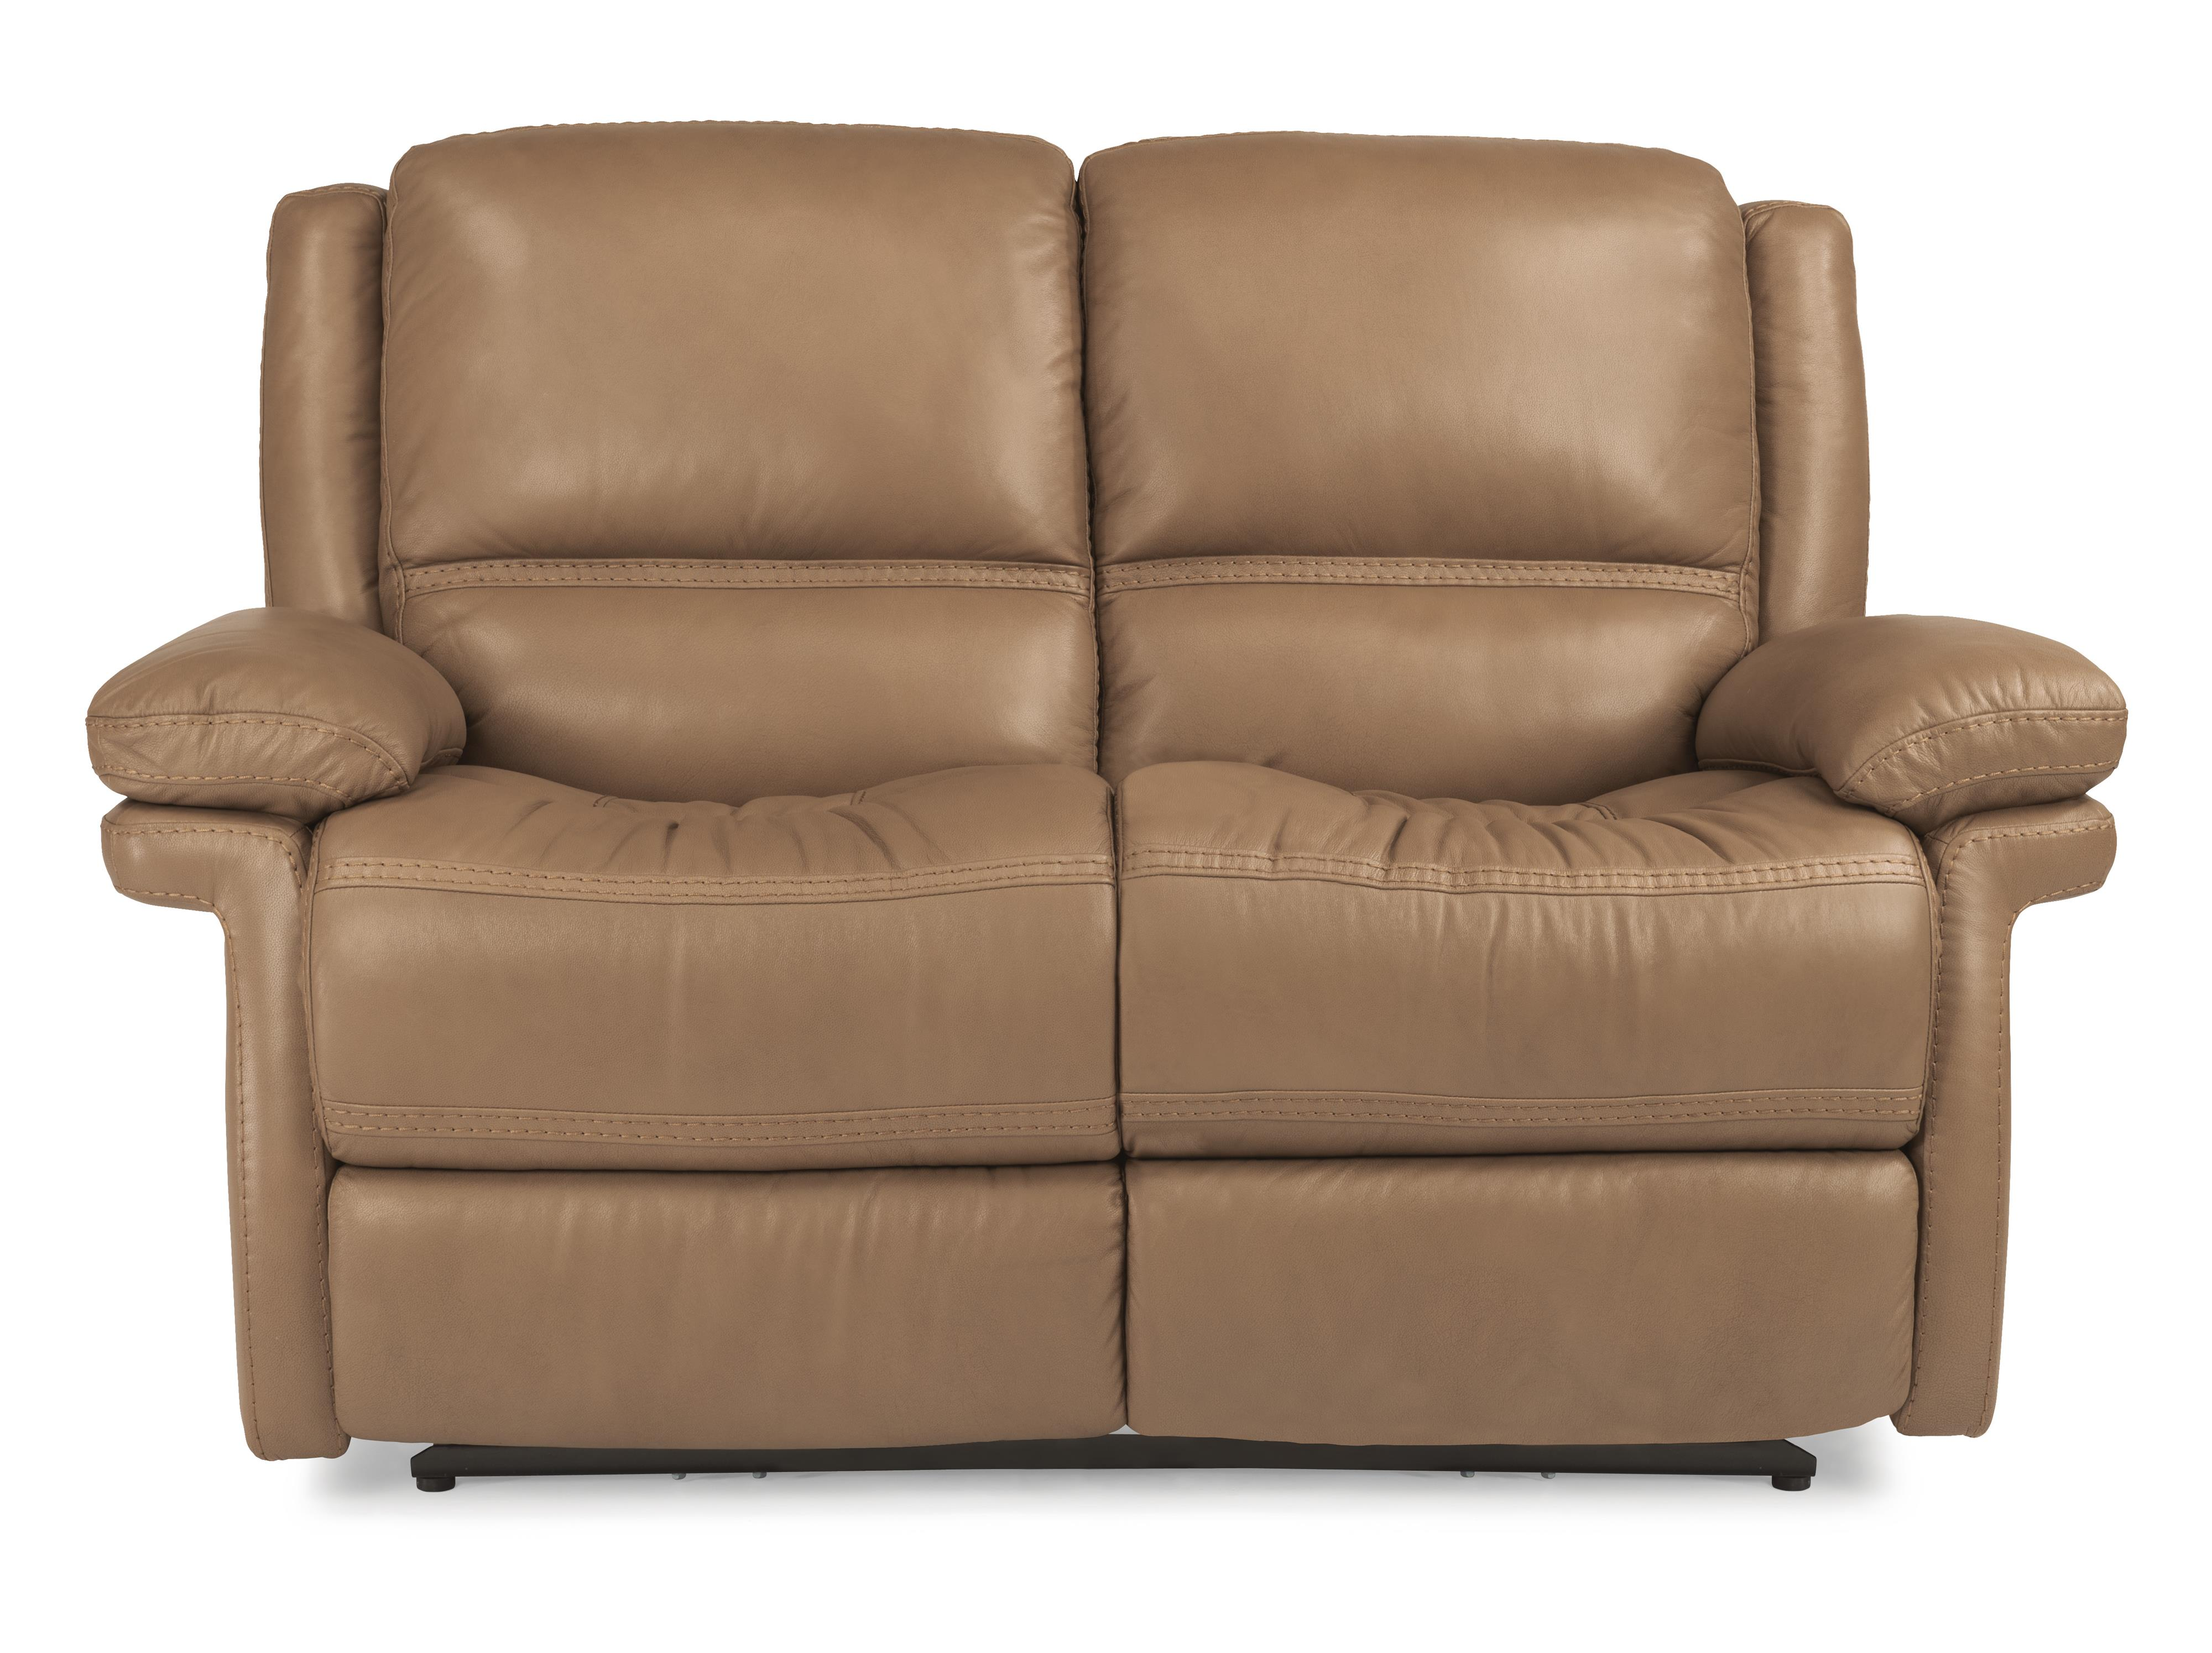 Flexsteel Latitudes - Skyler Power Reclining Loveseat - Item Number: 1655-60P-029-80